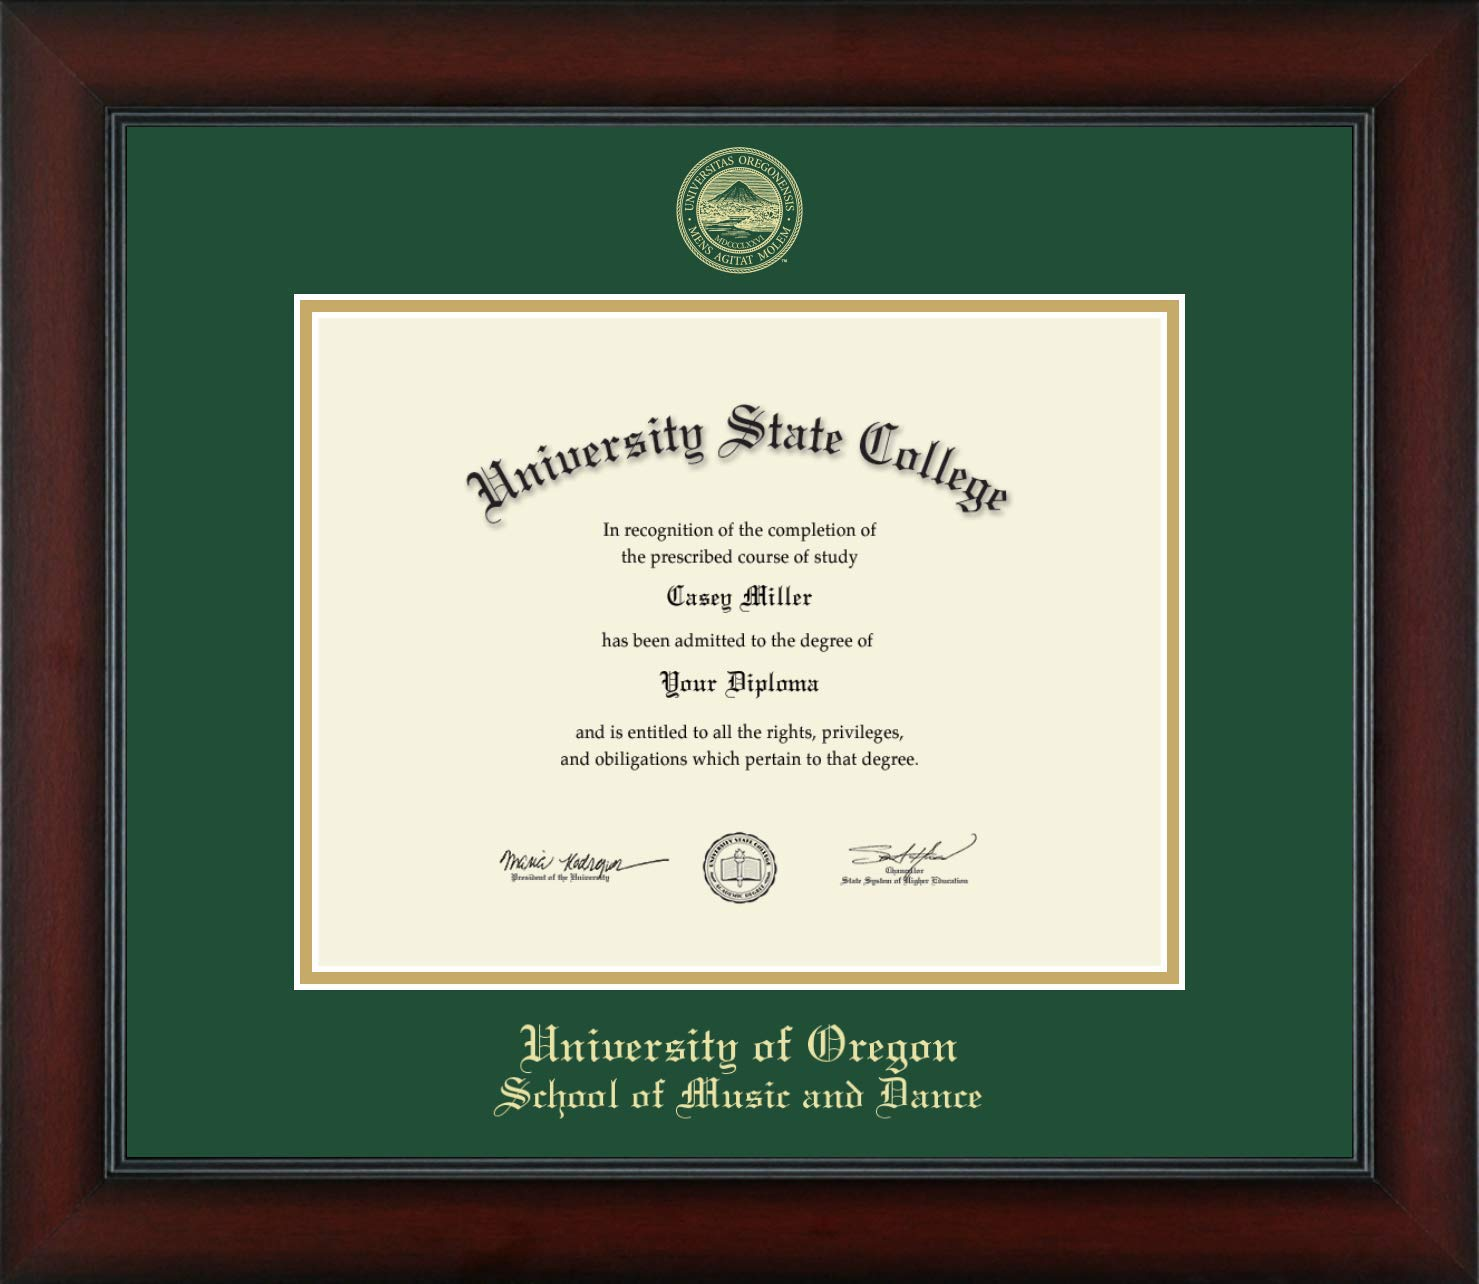 University of Oregon School of Music and Dance - Officially Licensed - Gold Embossed Diploma Frame - Diploma Size 11'' x 8.5''